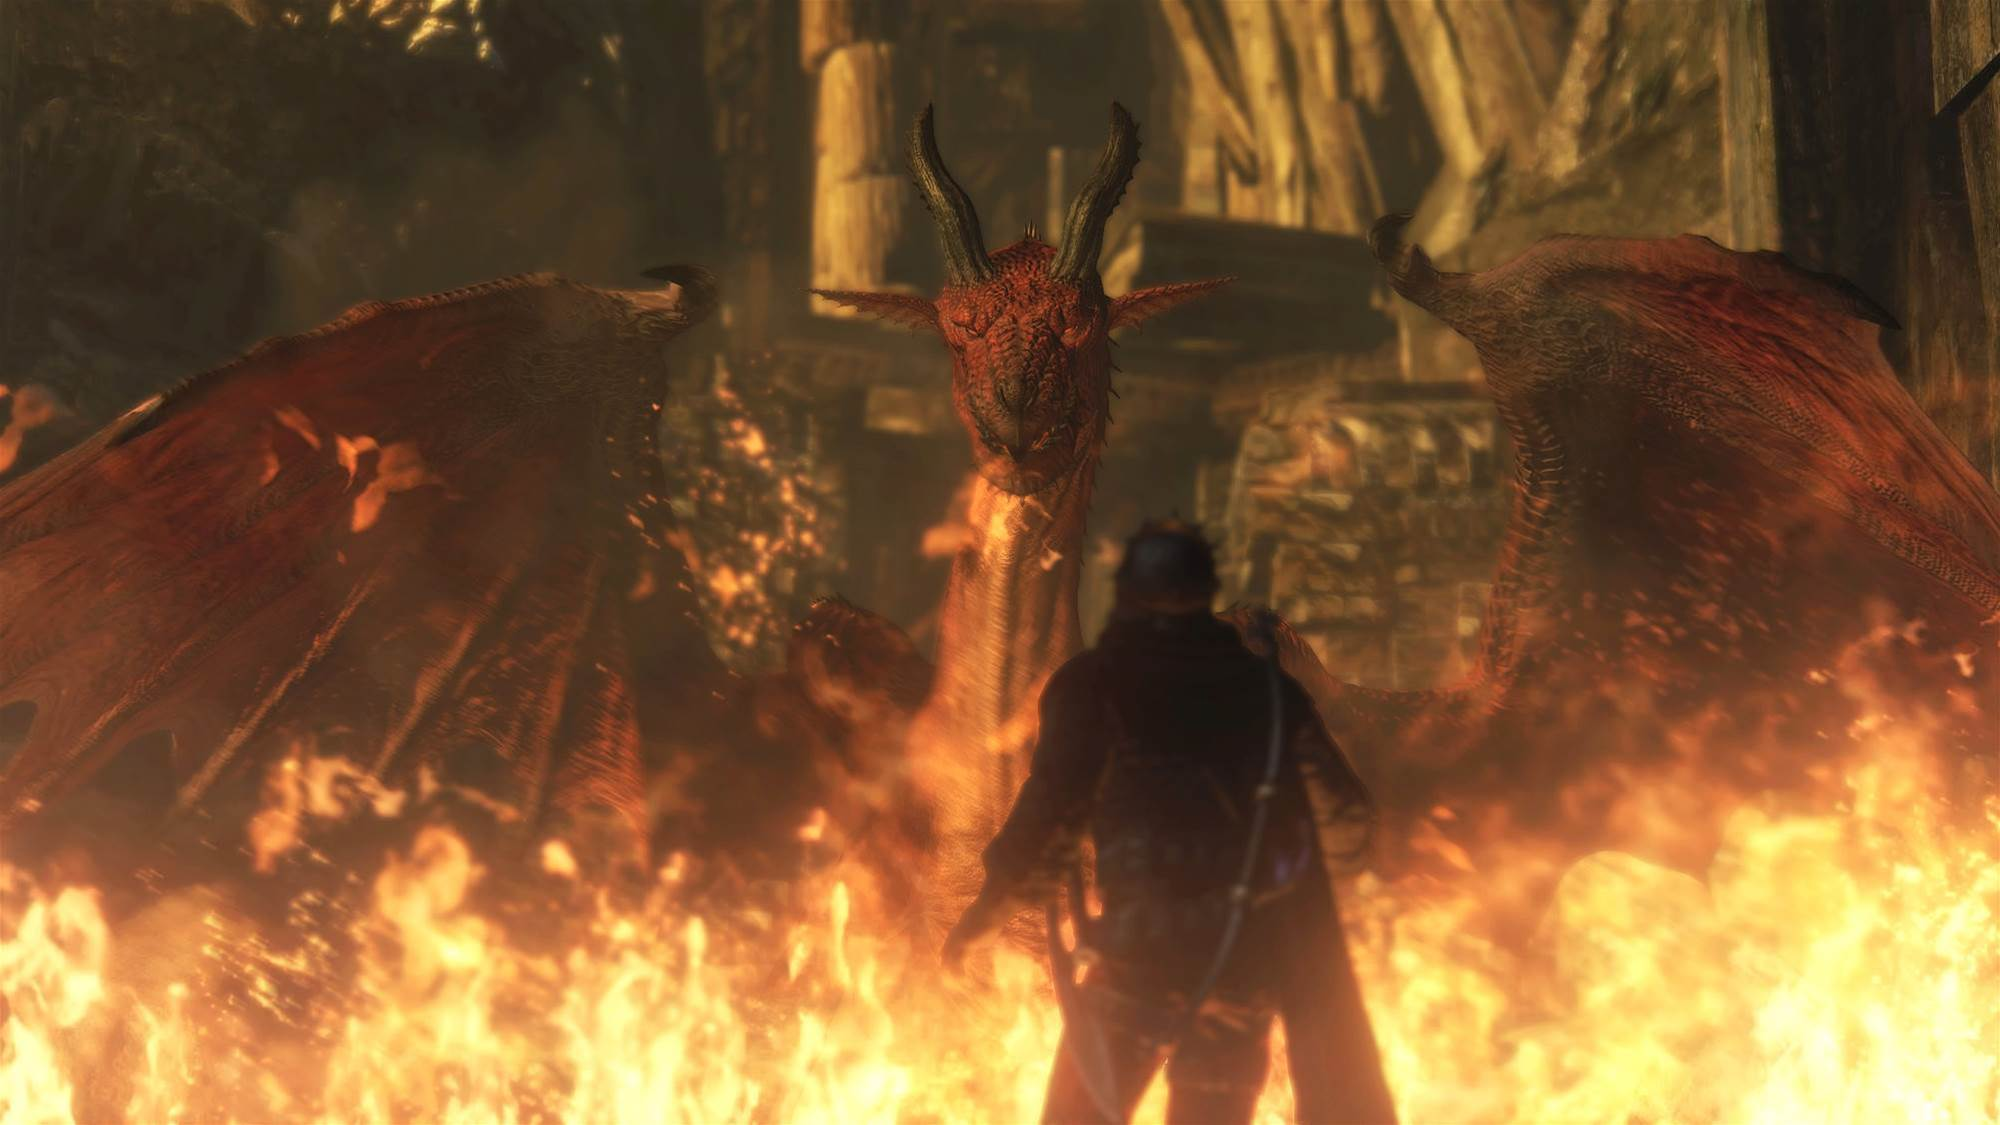 Dragon's Dogma arises on current gen this October